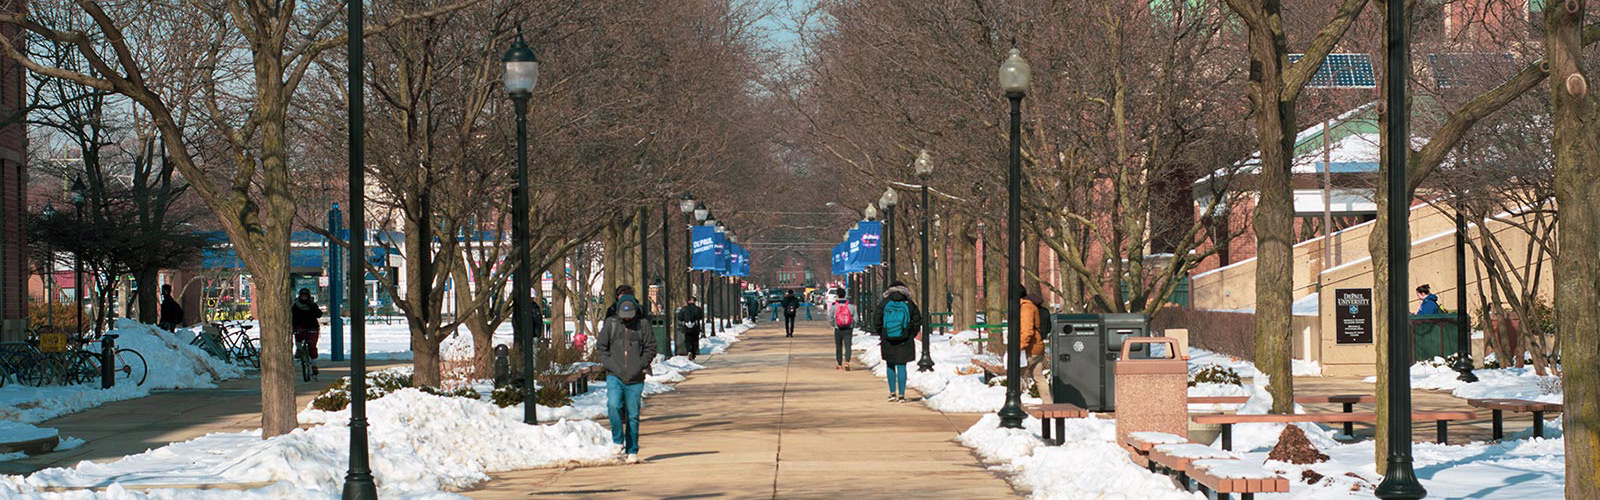 DePaul Lincoln Park Campus During Winter